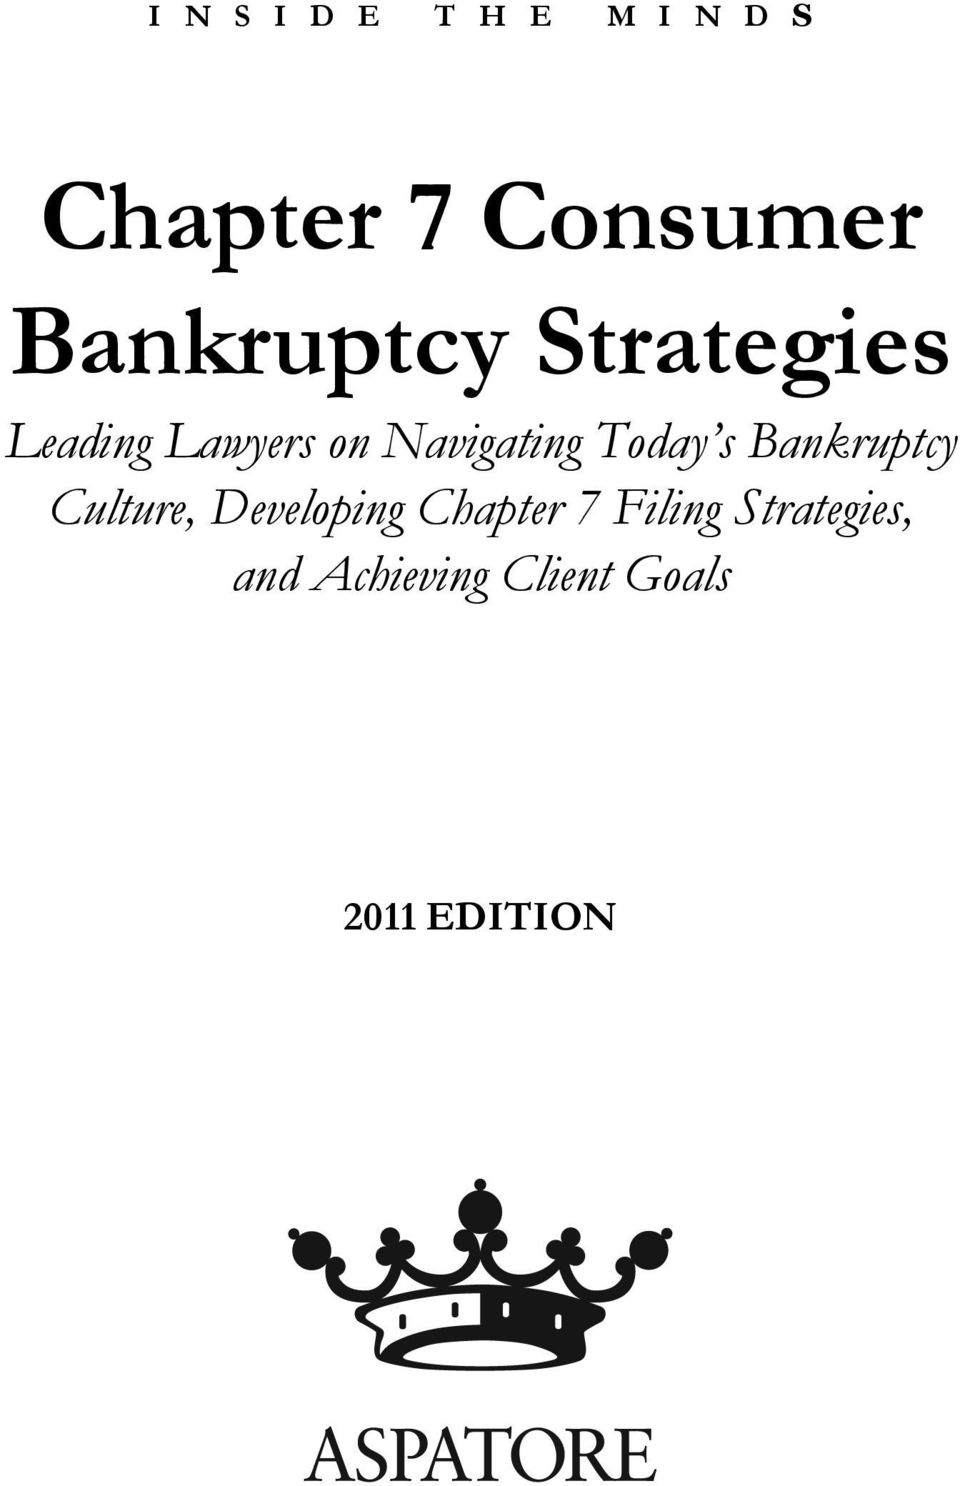 Today s Bankruptcy Culture, Developing Chapter 7